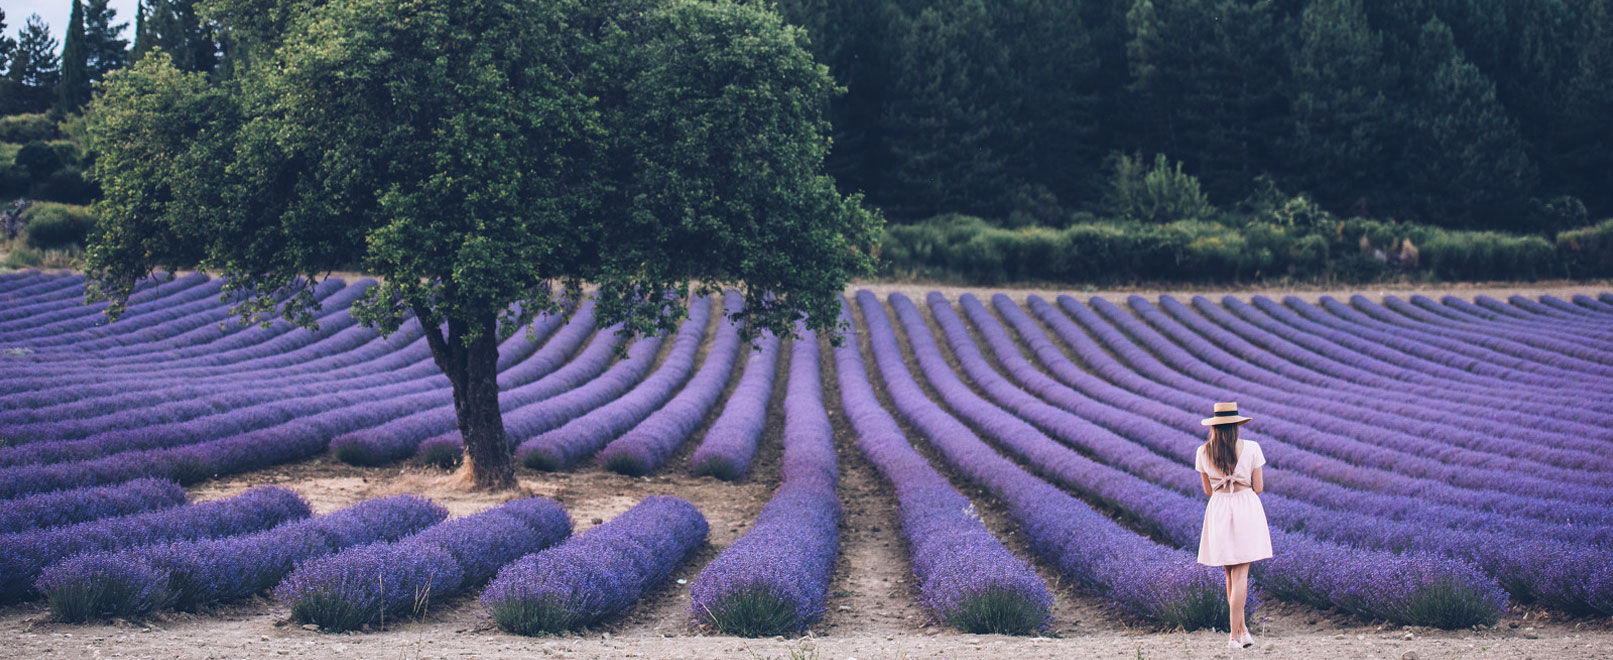 Lavender field in Vaucluse Provence © Coquard